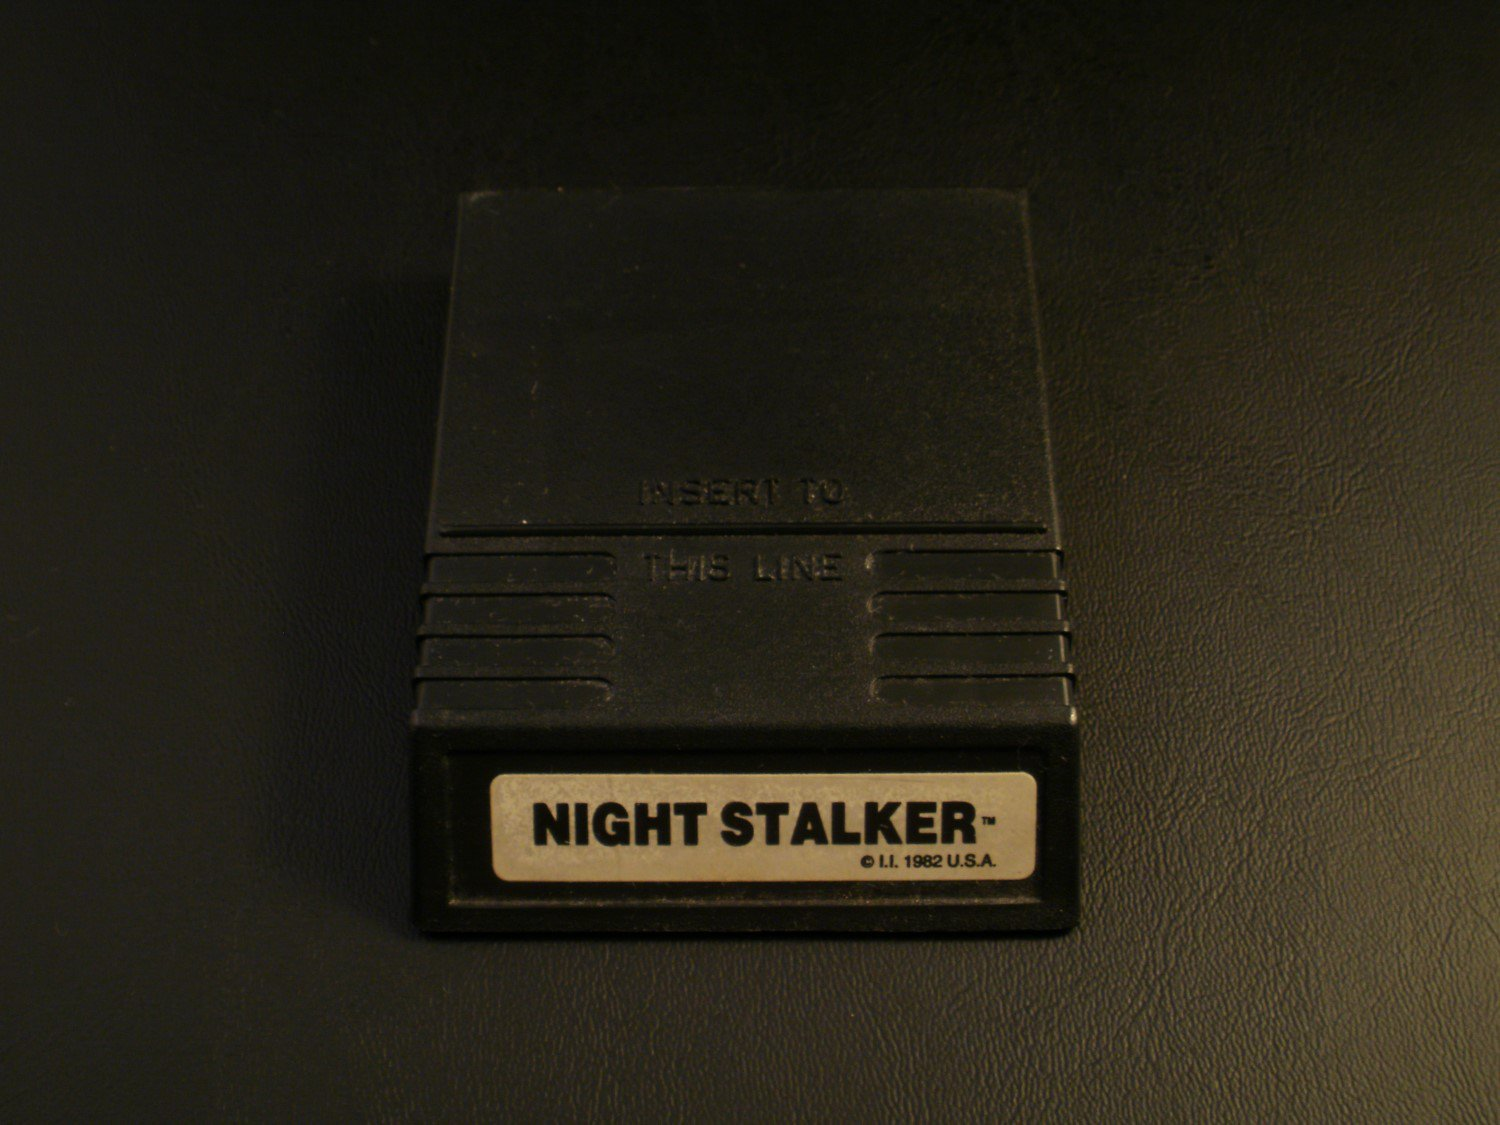 Night Stalker - Mattel Intellivision - White Label Version